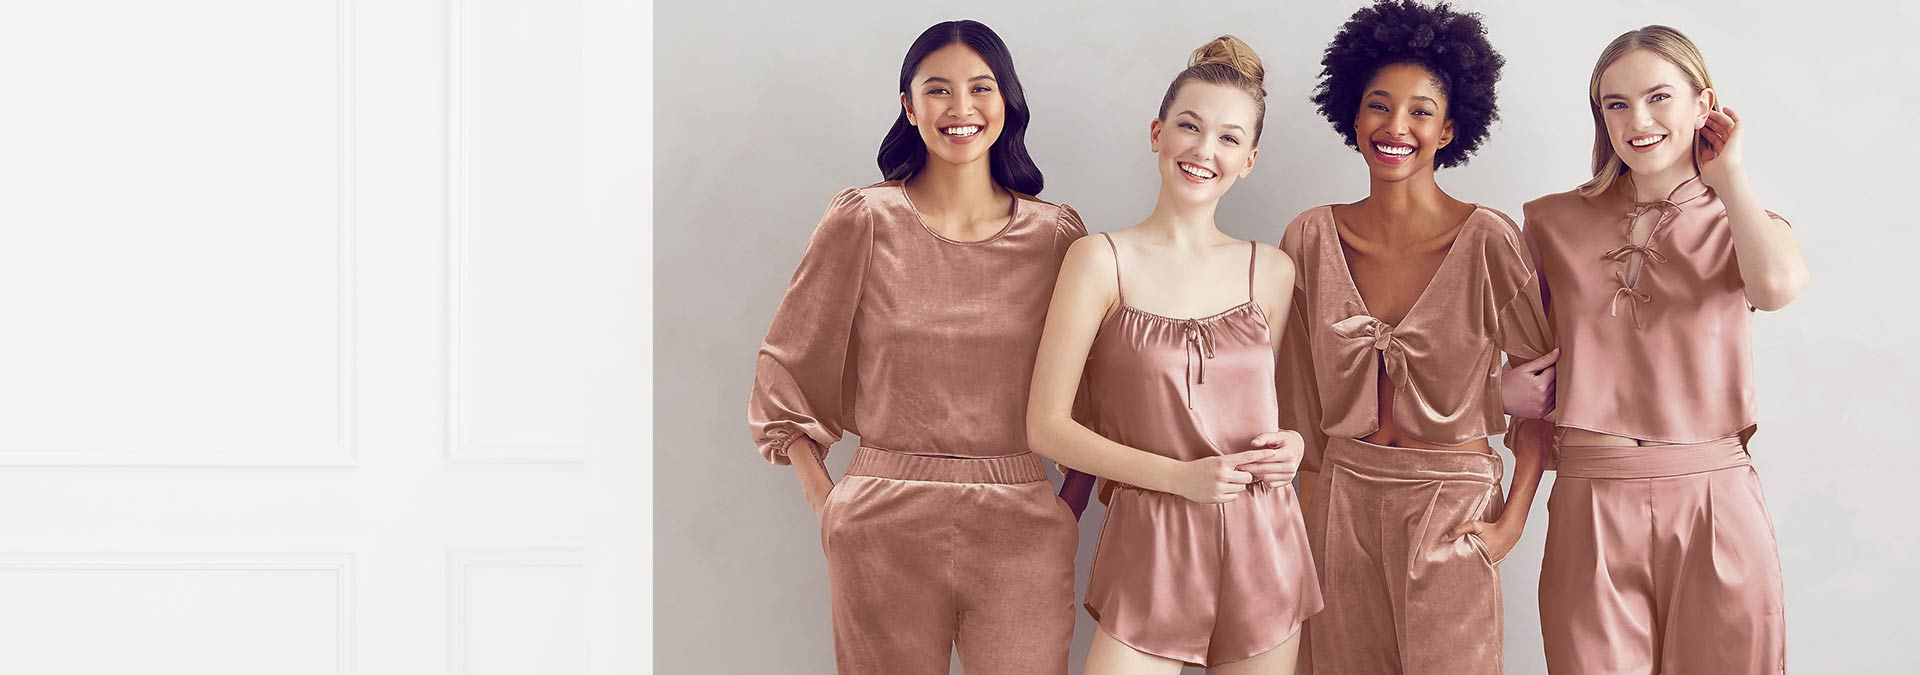 Womens Loungewear - Velvet and Satin Pajama Sets